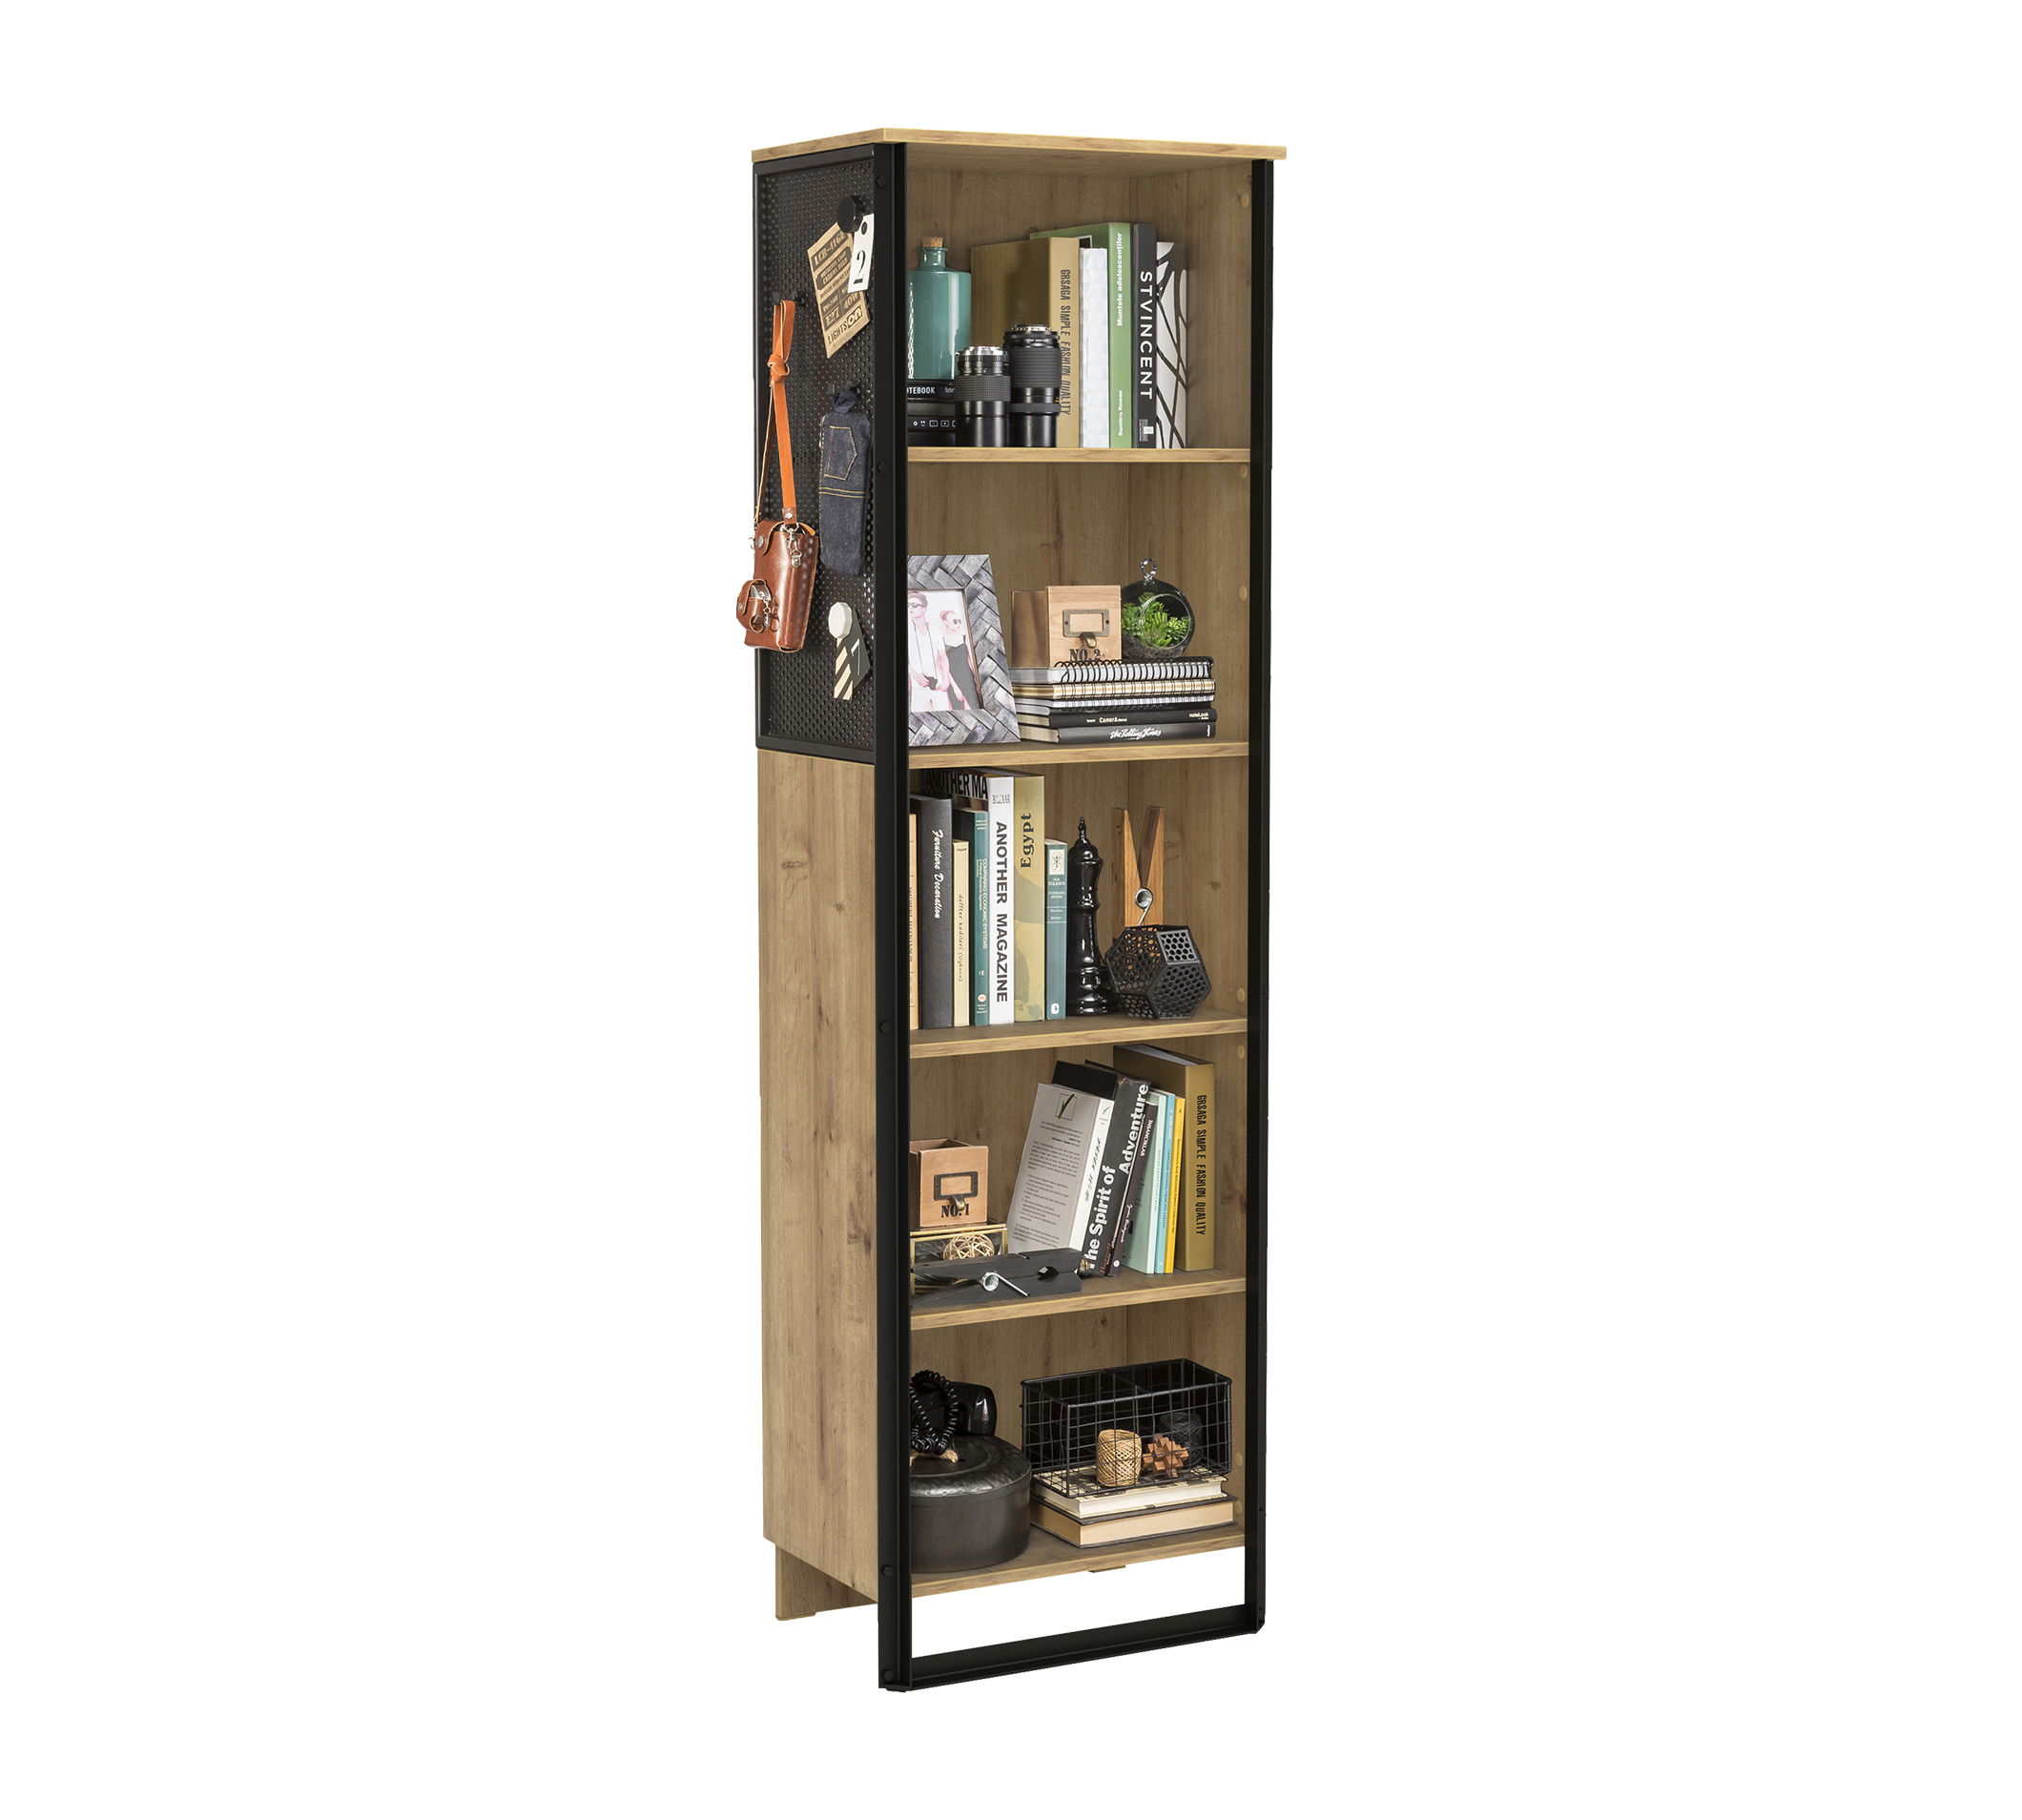 Biblioteca Pal Metal Tineret Wood Metal Natural Poza